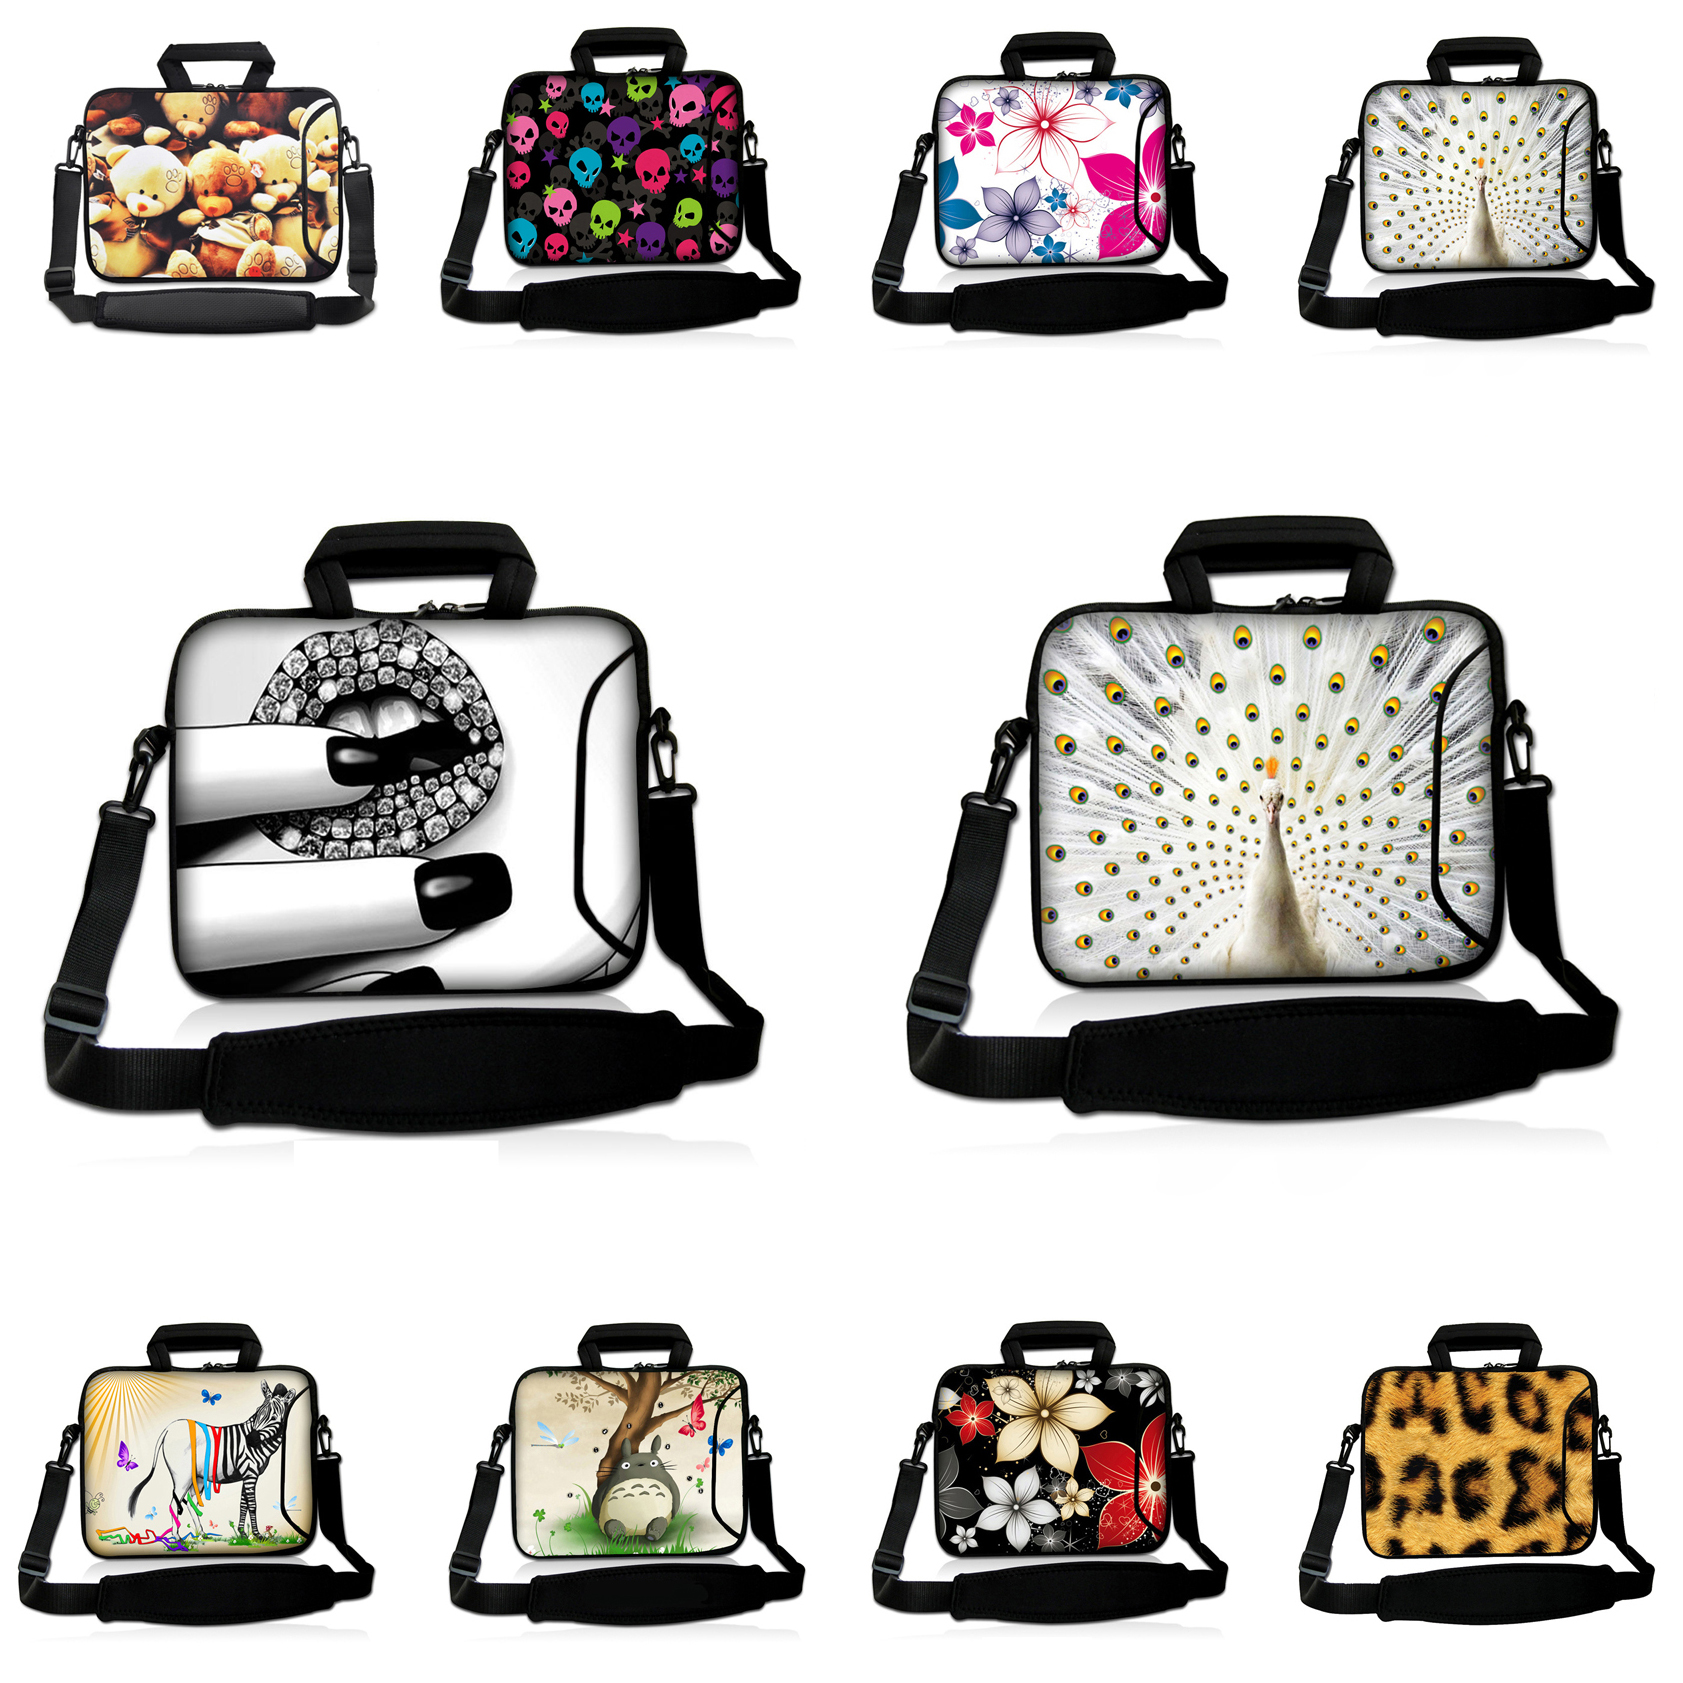 New Arrival Notebook Cover Pouch Cases 13 12 15 17 14 10 15.6 14.4 17.3 inch Women Shoulder Messenger Laptop Bags For HP Envy